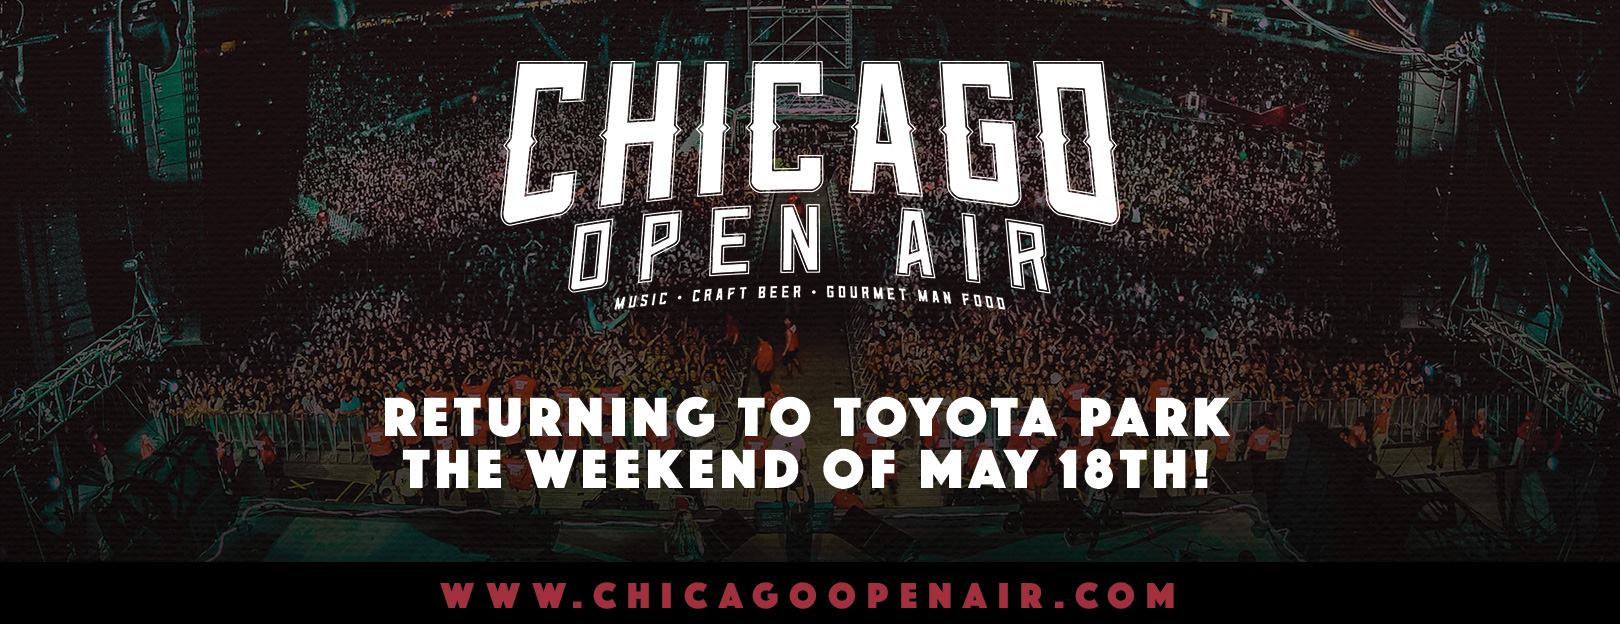 chicago open air festival to return in 2019 rock front center